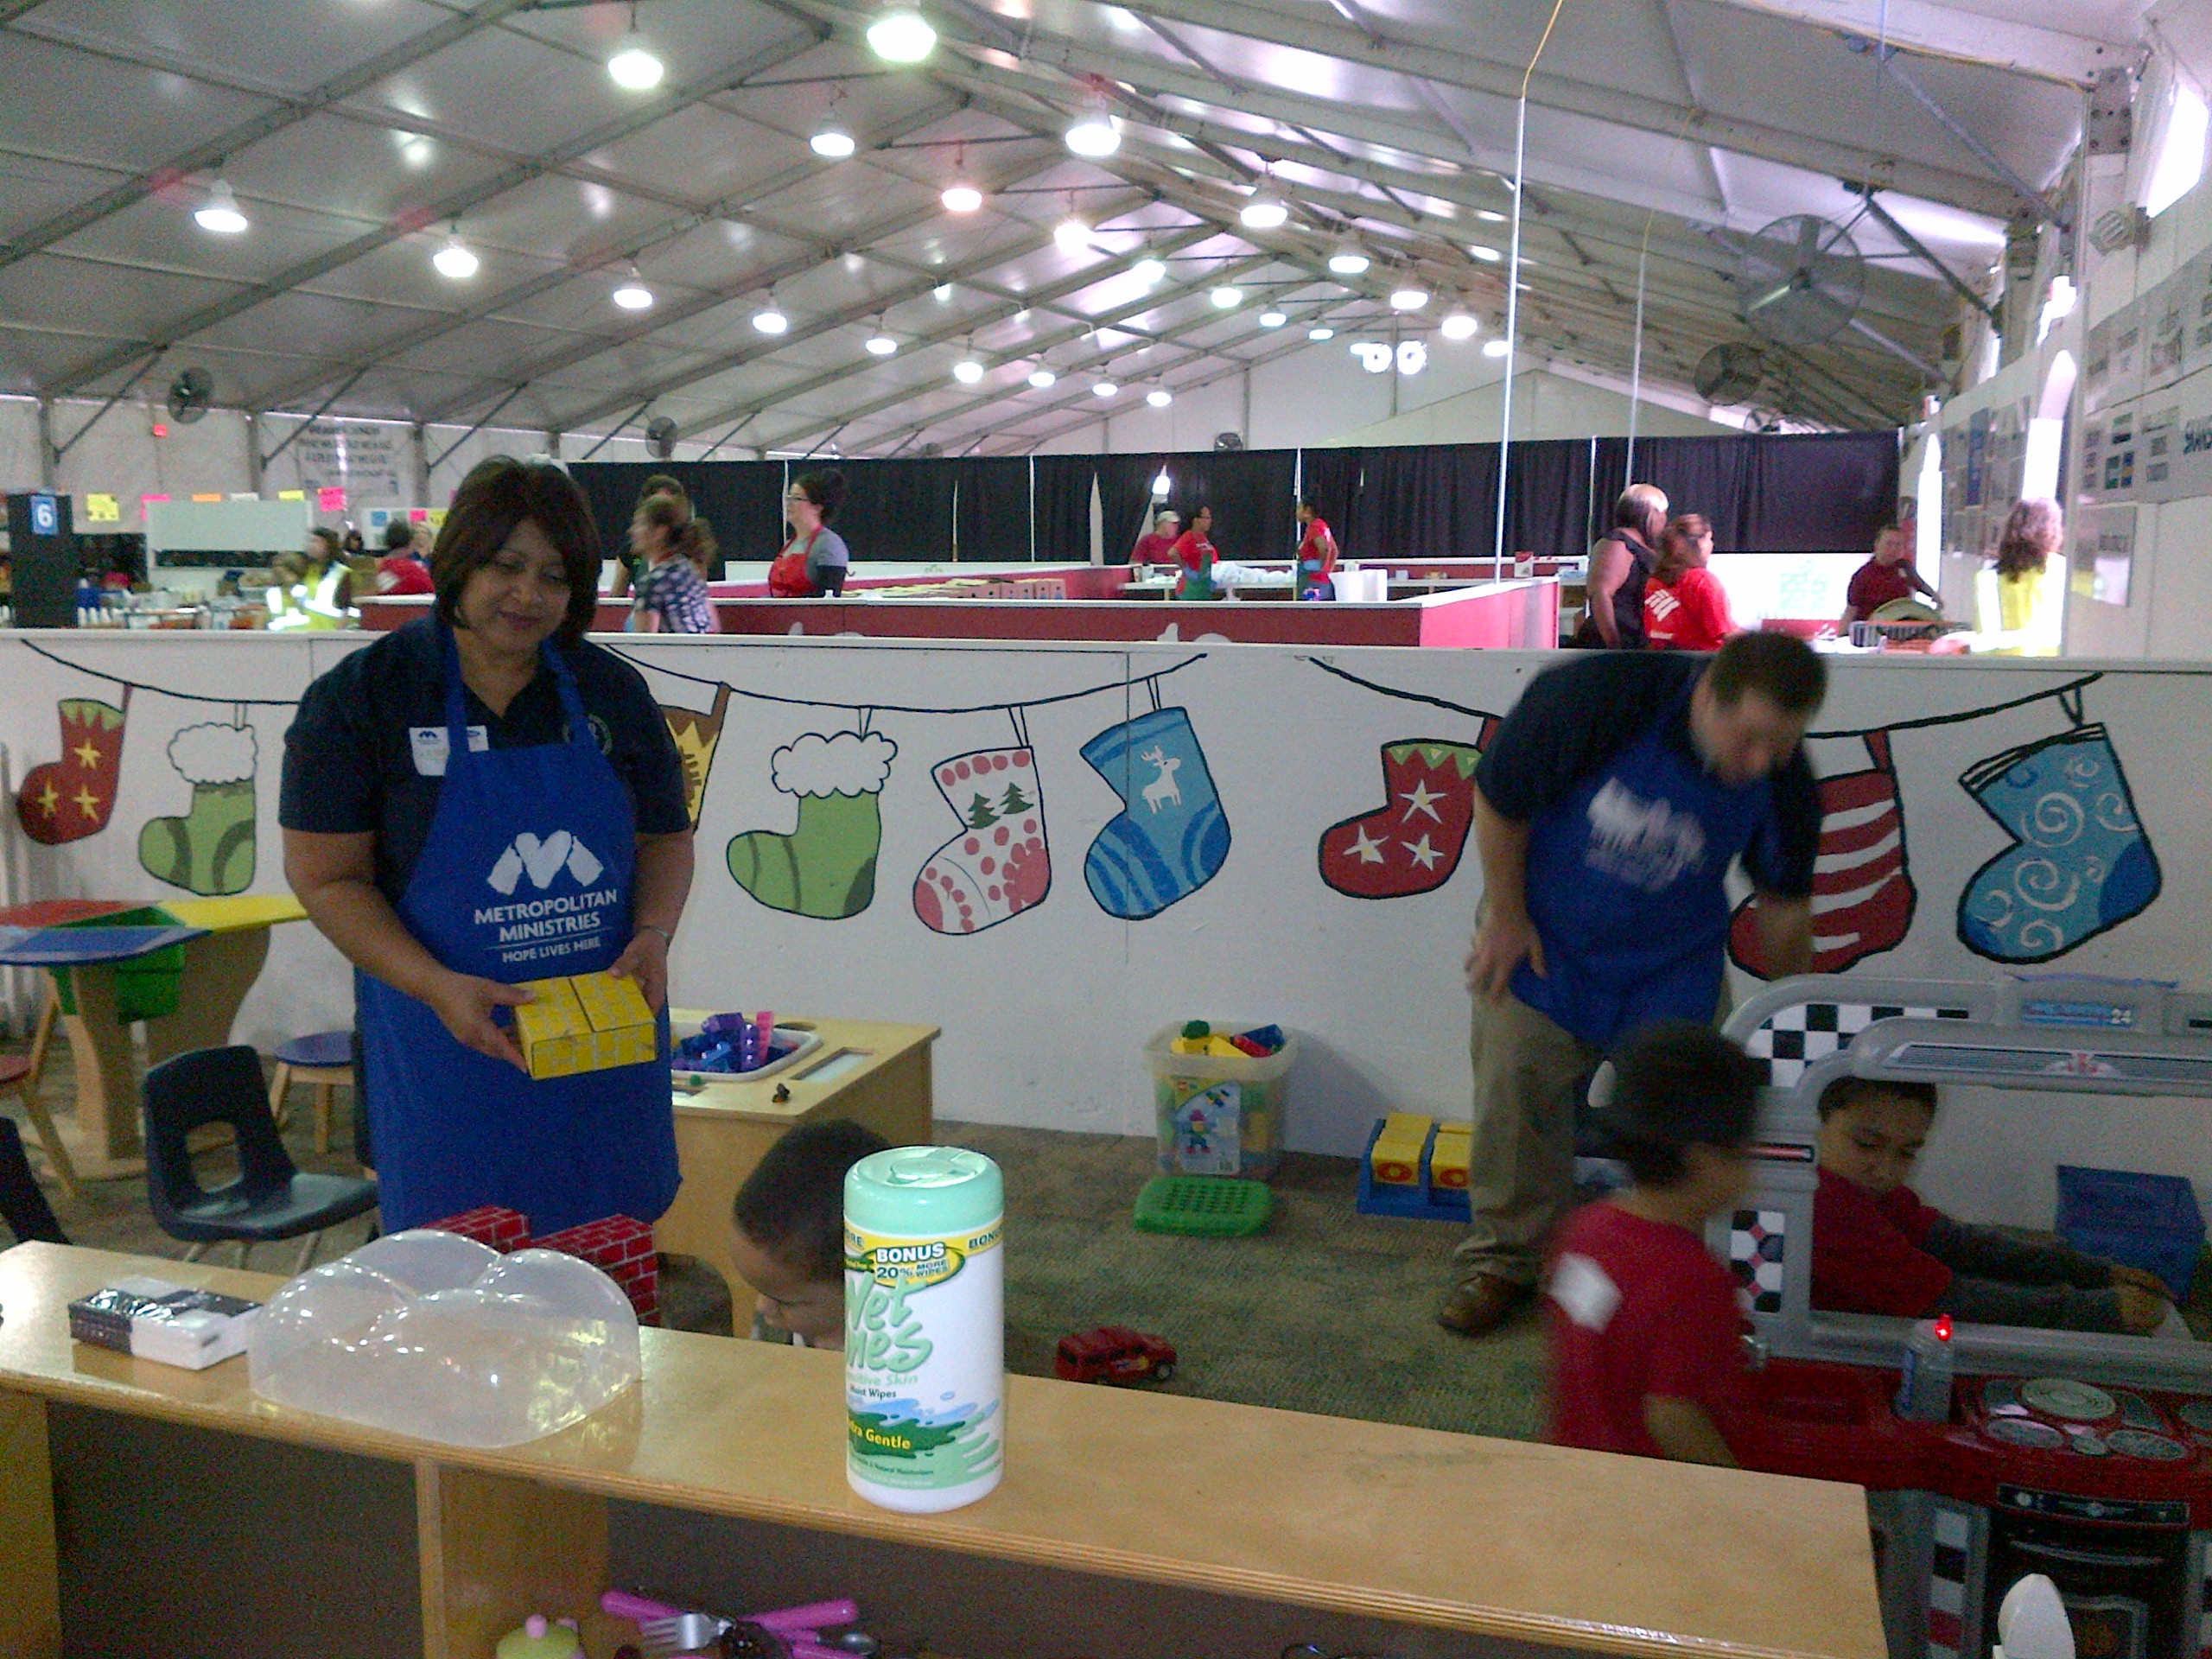 BBK - Metroploitan Ministries Holiday Tent